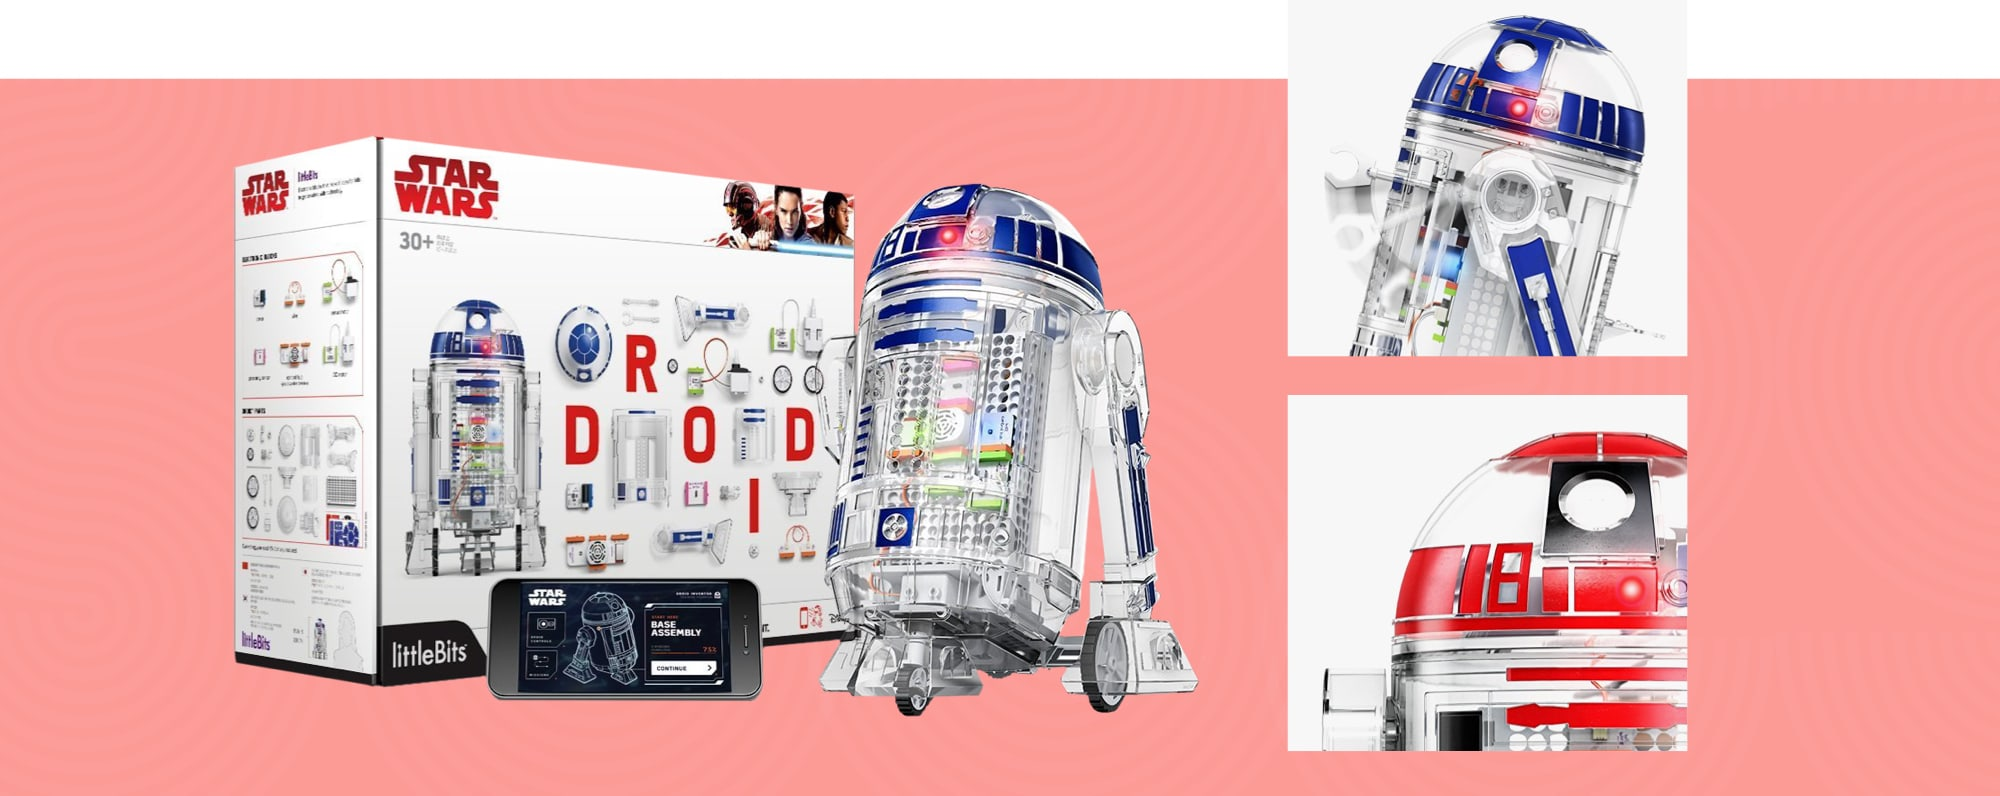 LittleBits Star Wars Droid Inventor Kit of R2-D2